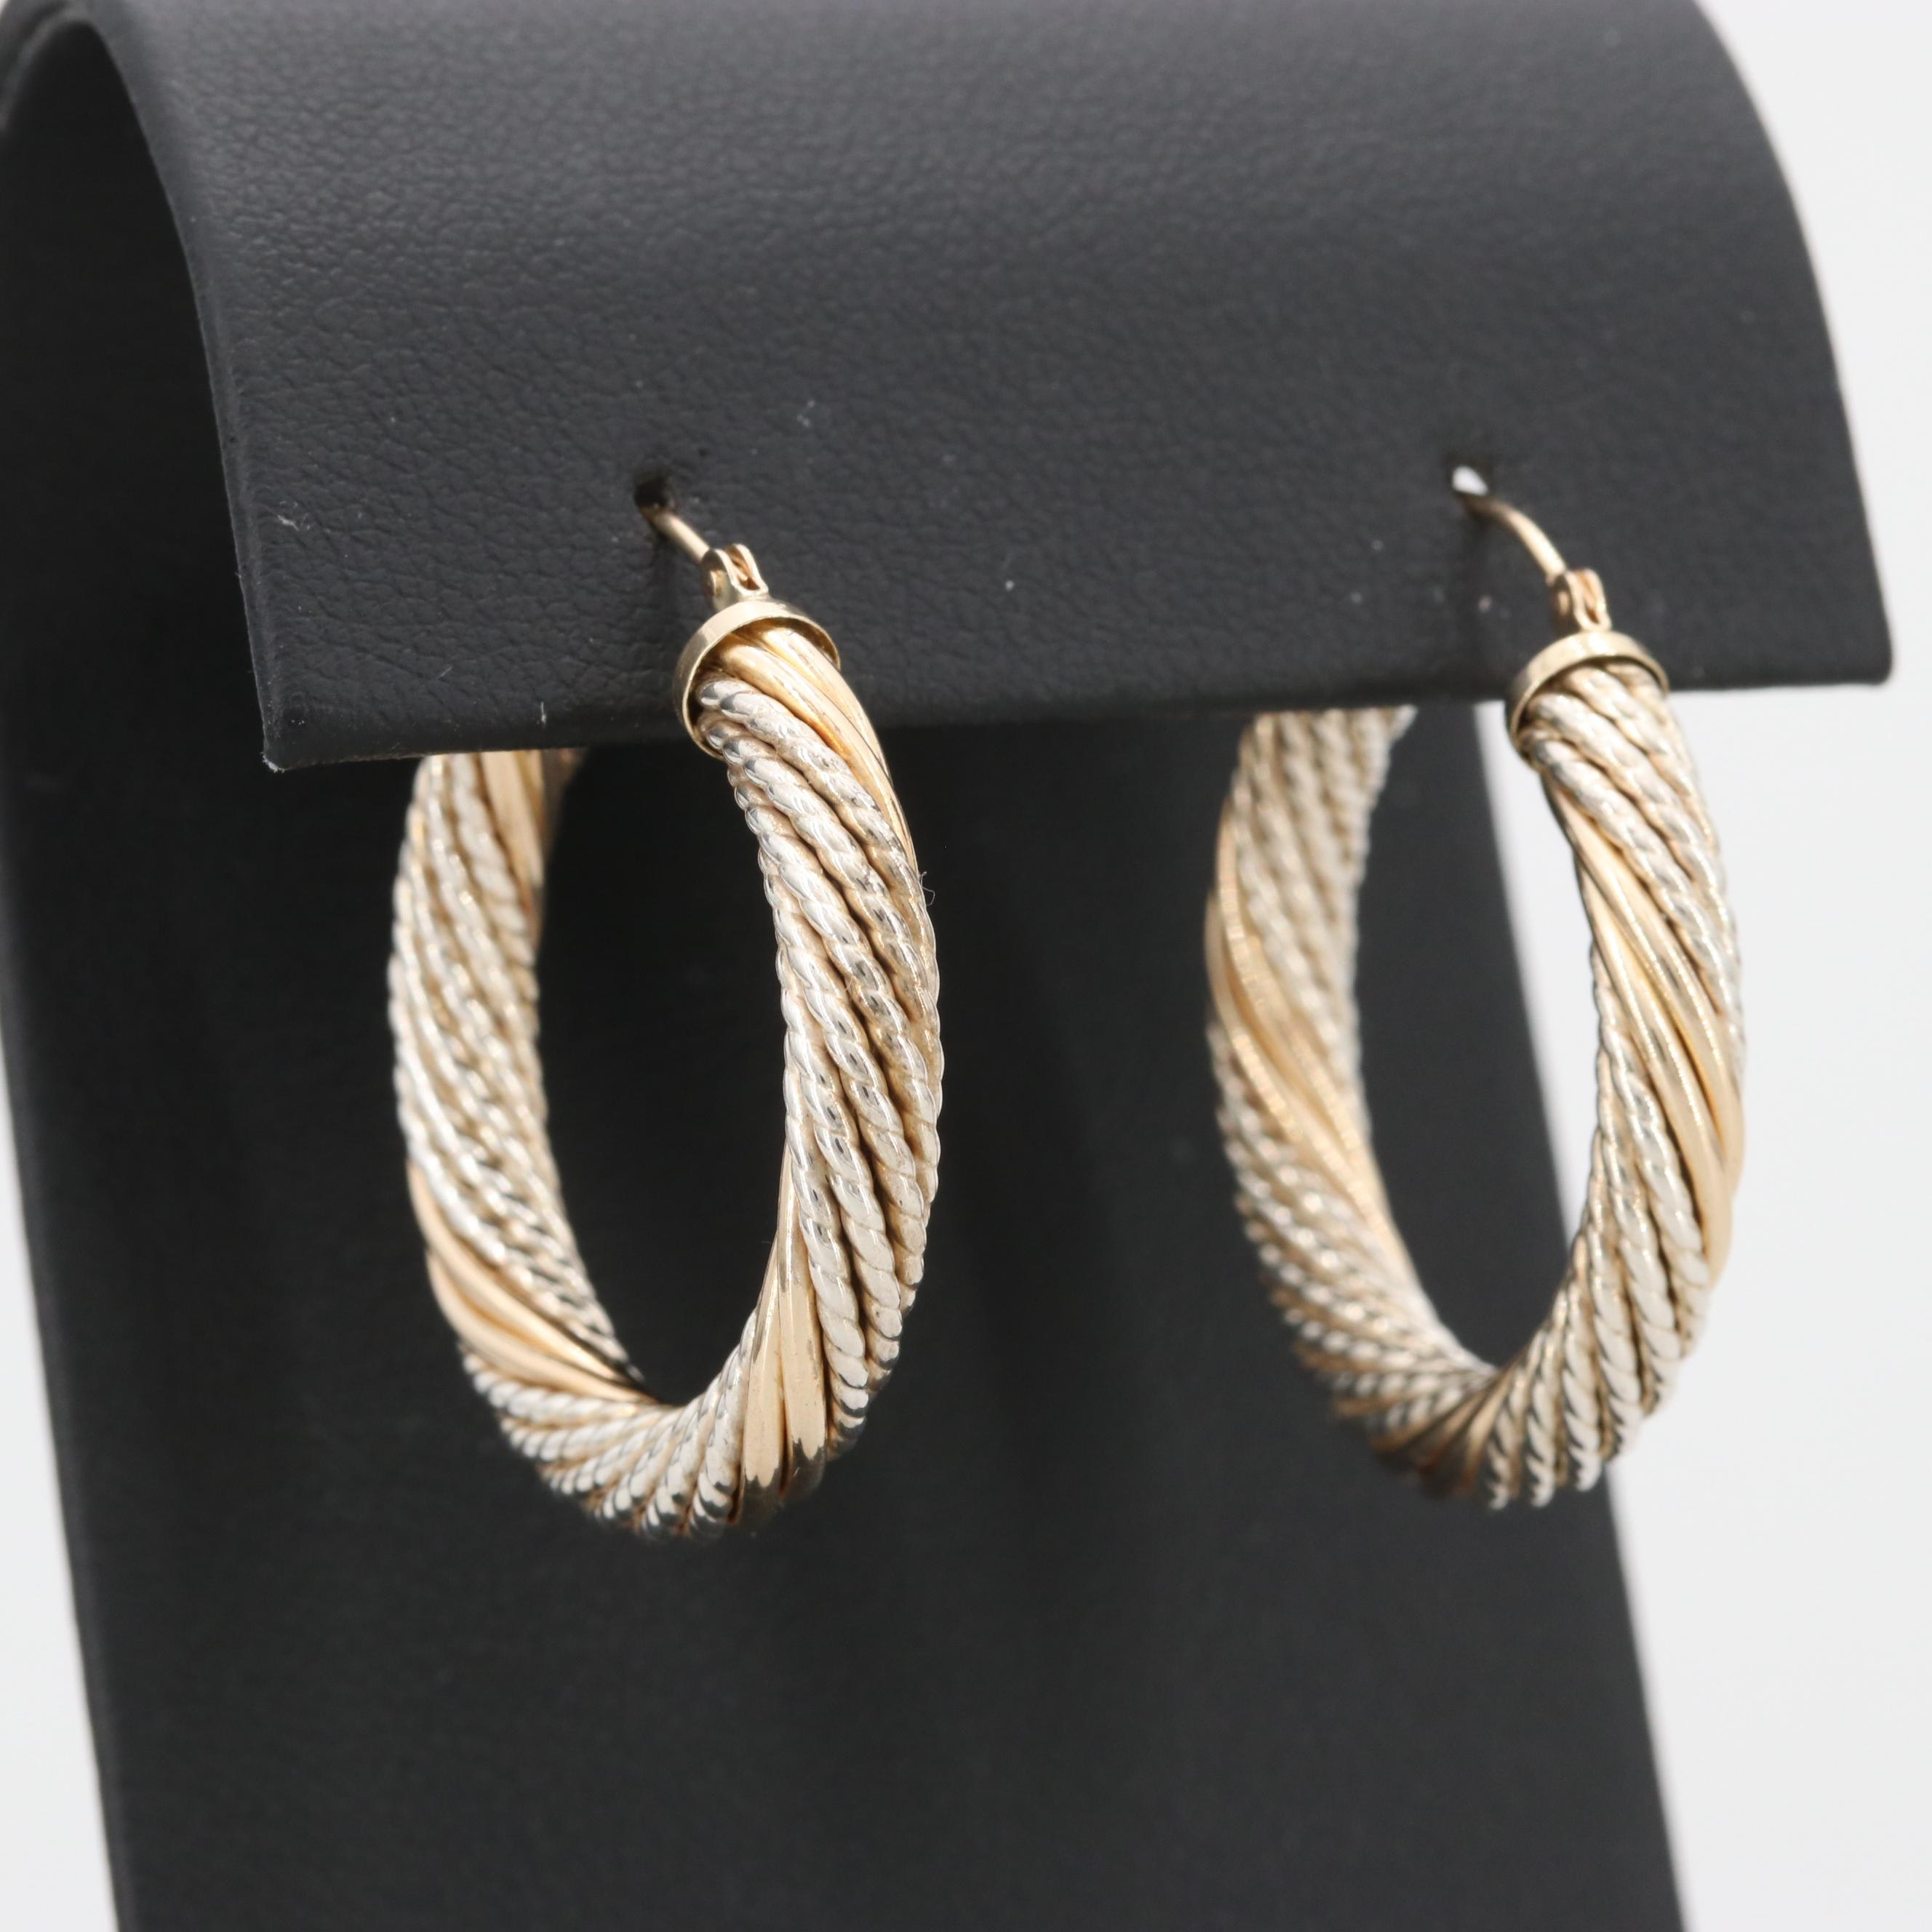 14K Yellow Gold and Sterling Silver Hoop Earrings